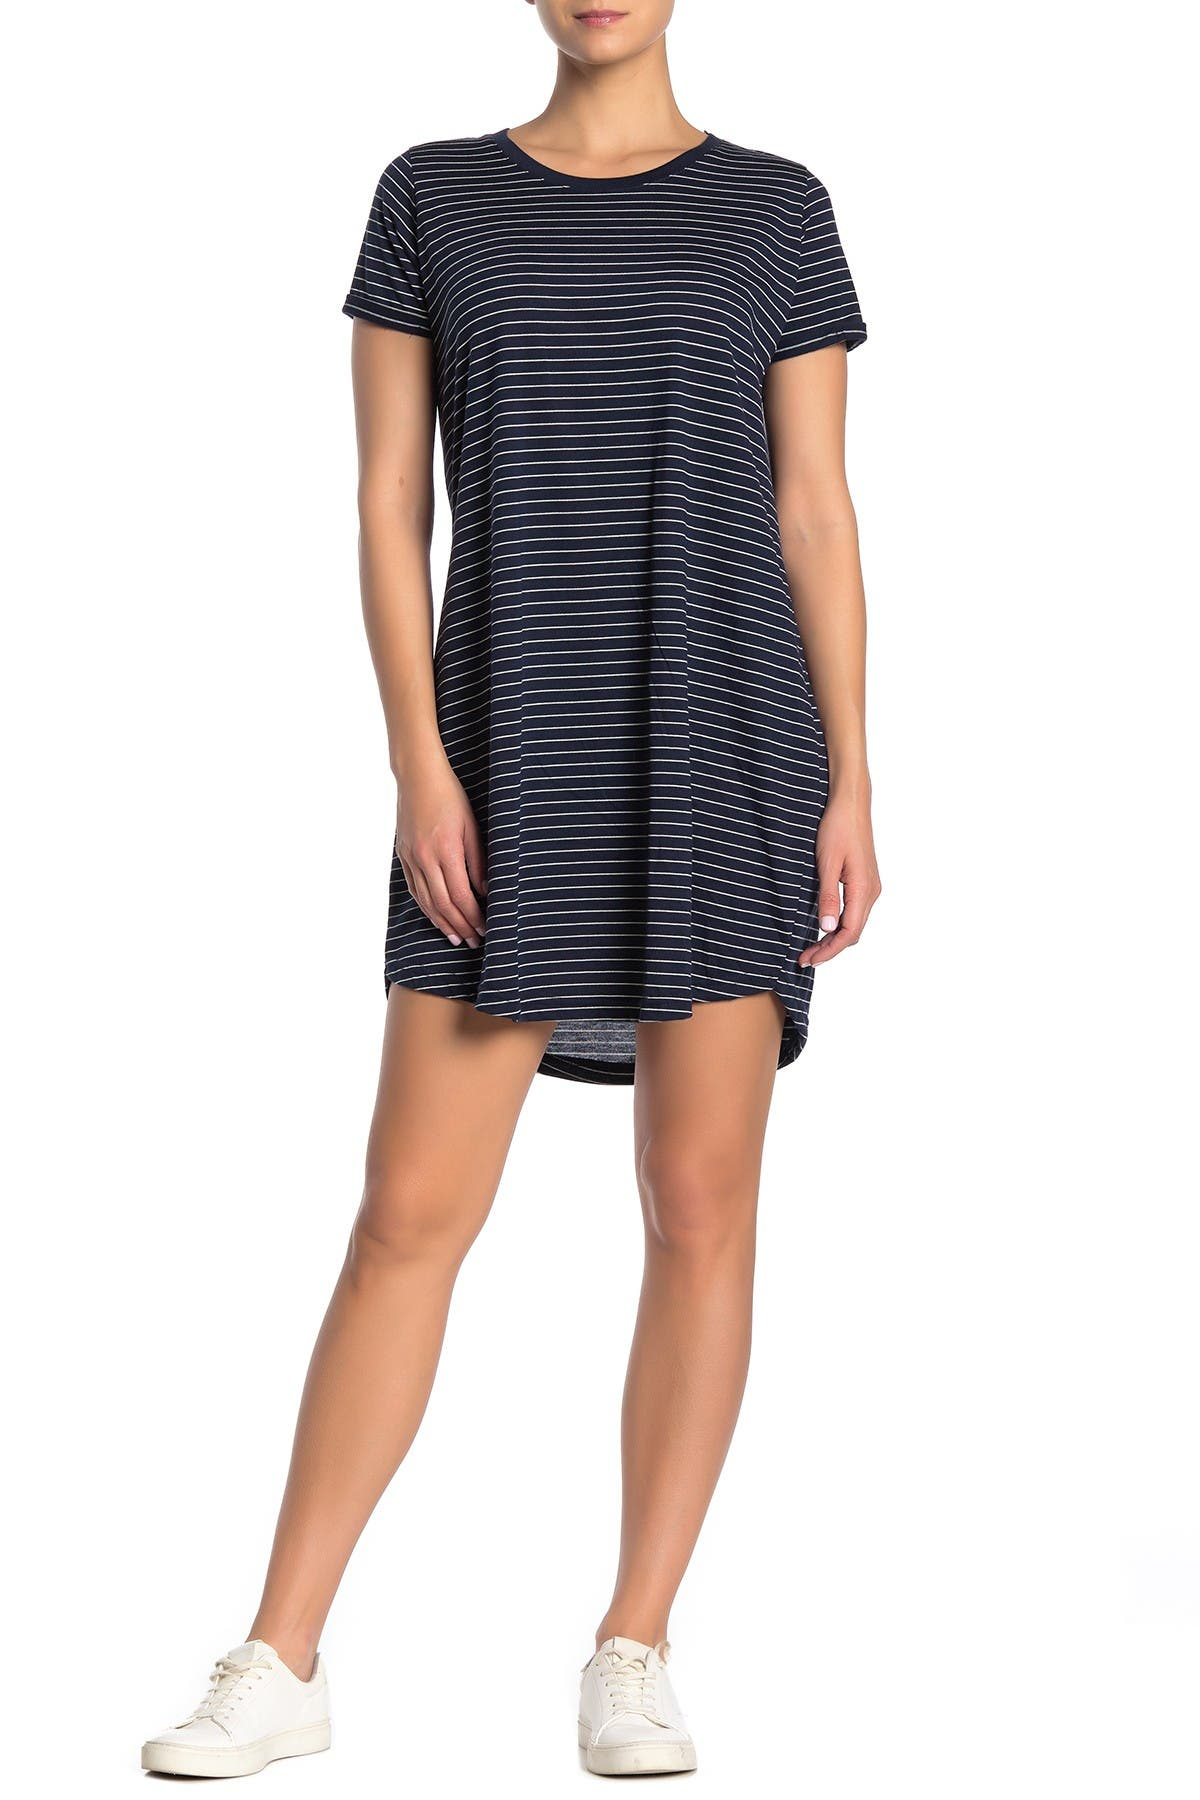 Image of Cotton On Tina Stripe T-Shirt Dress